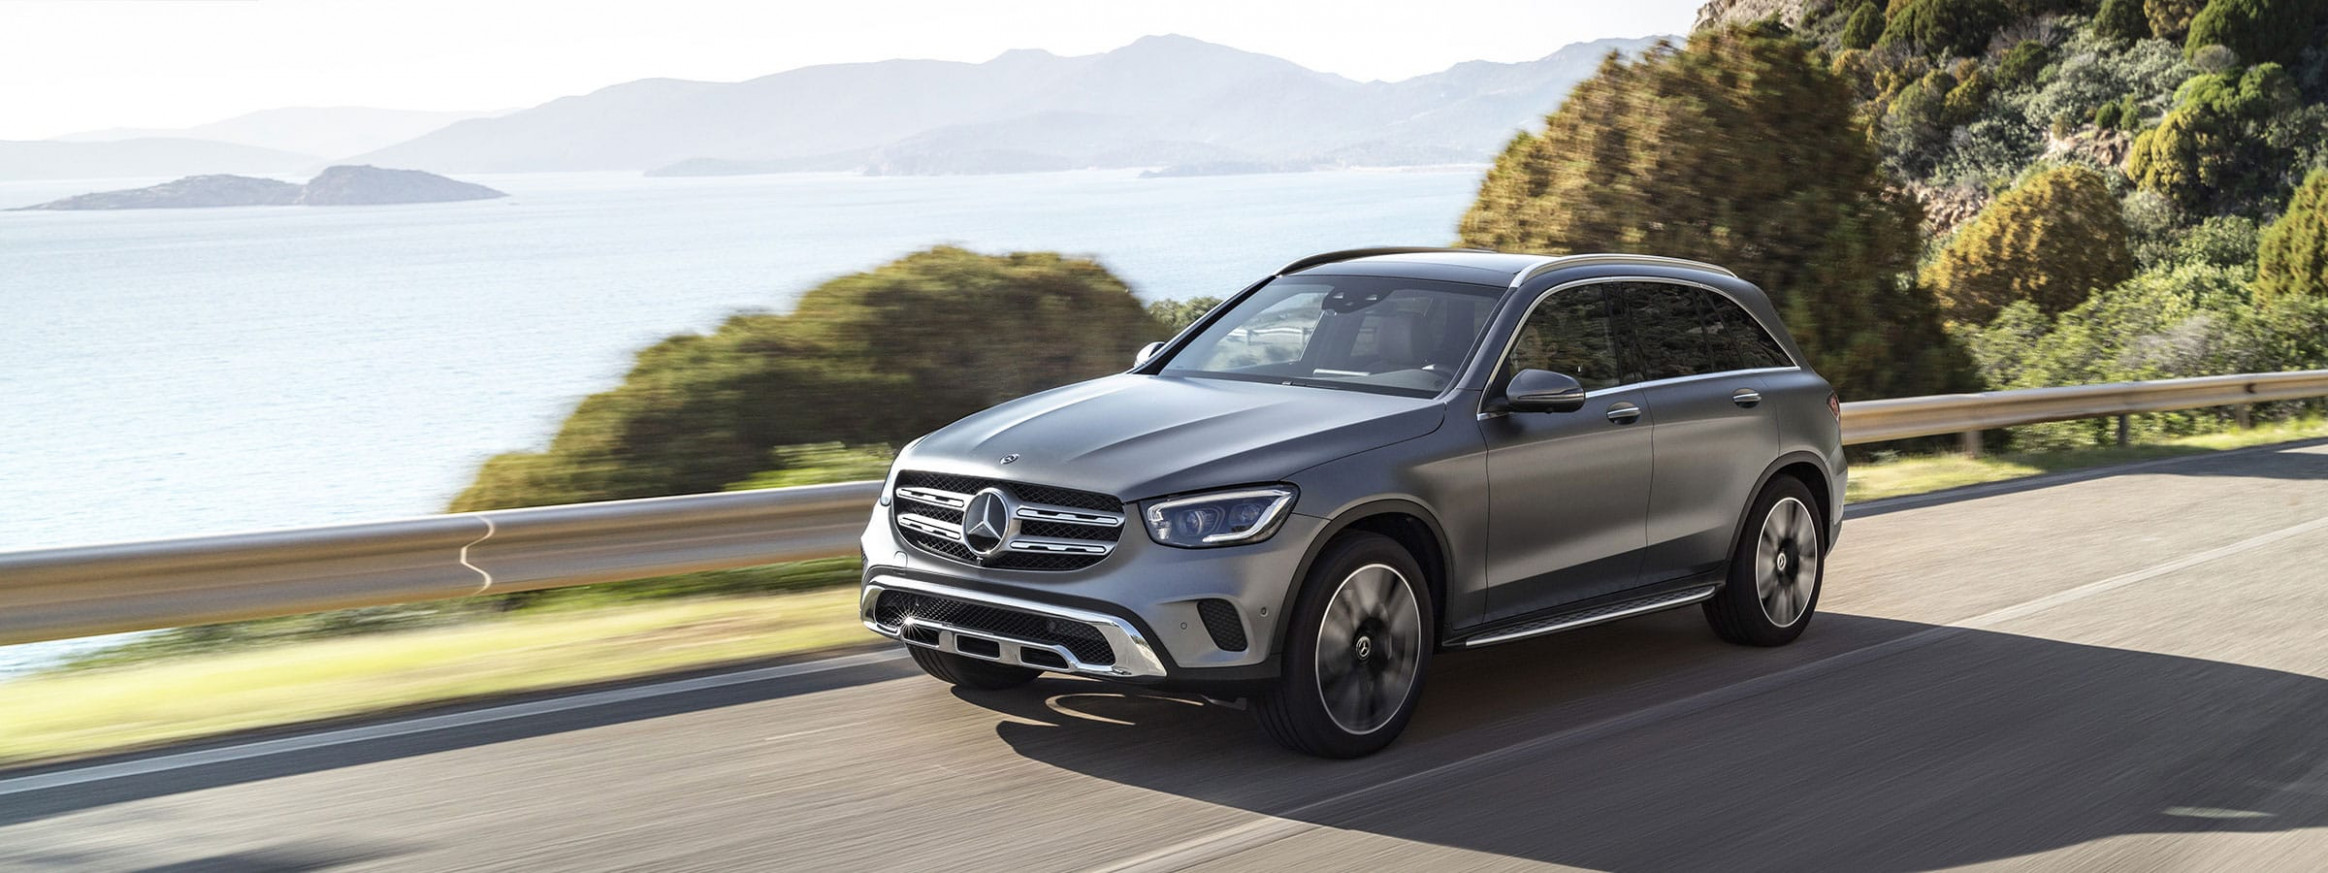 9 GLC SUV | Future Vehicles | Mercedes-Benz USA - 2020 mercedes glc